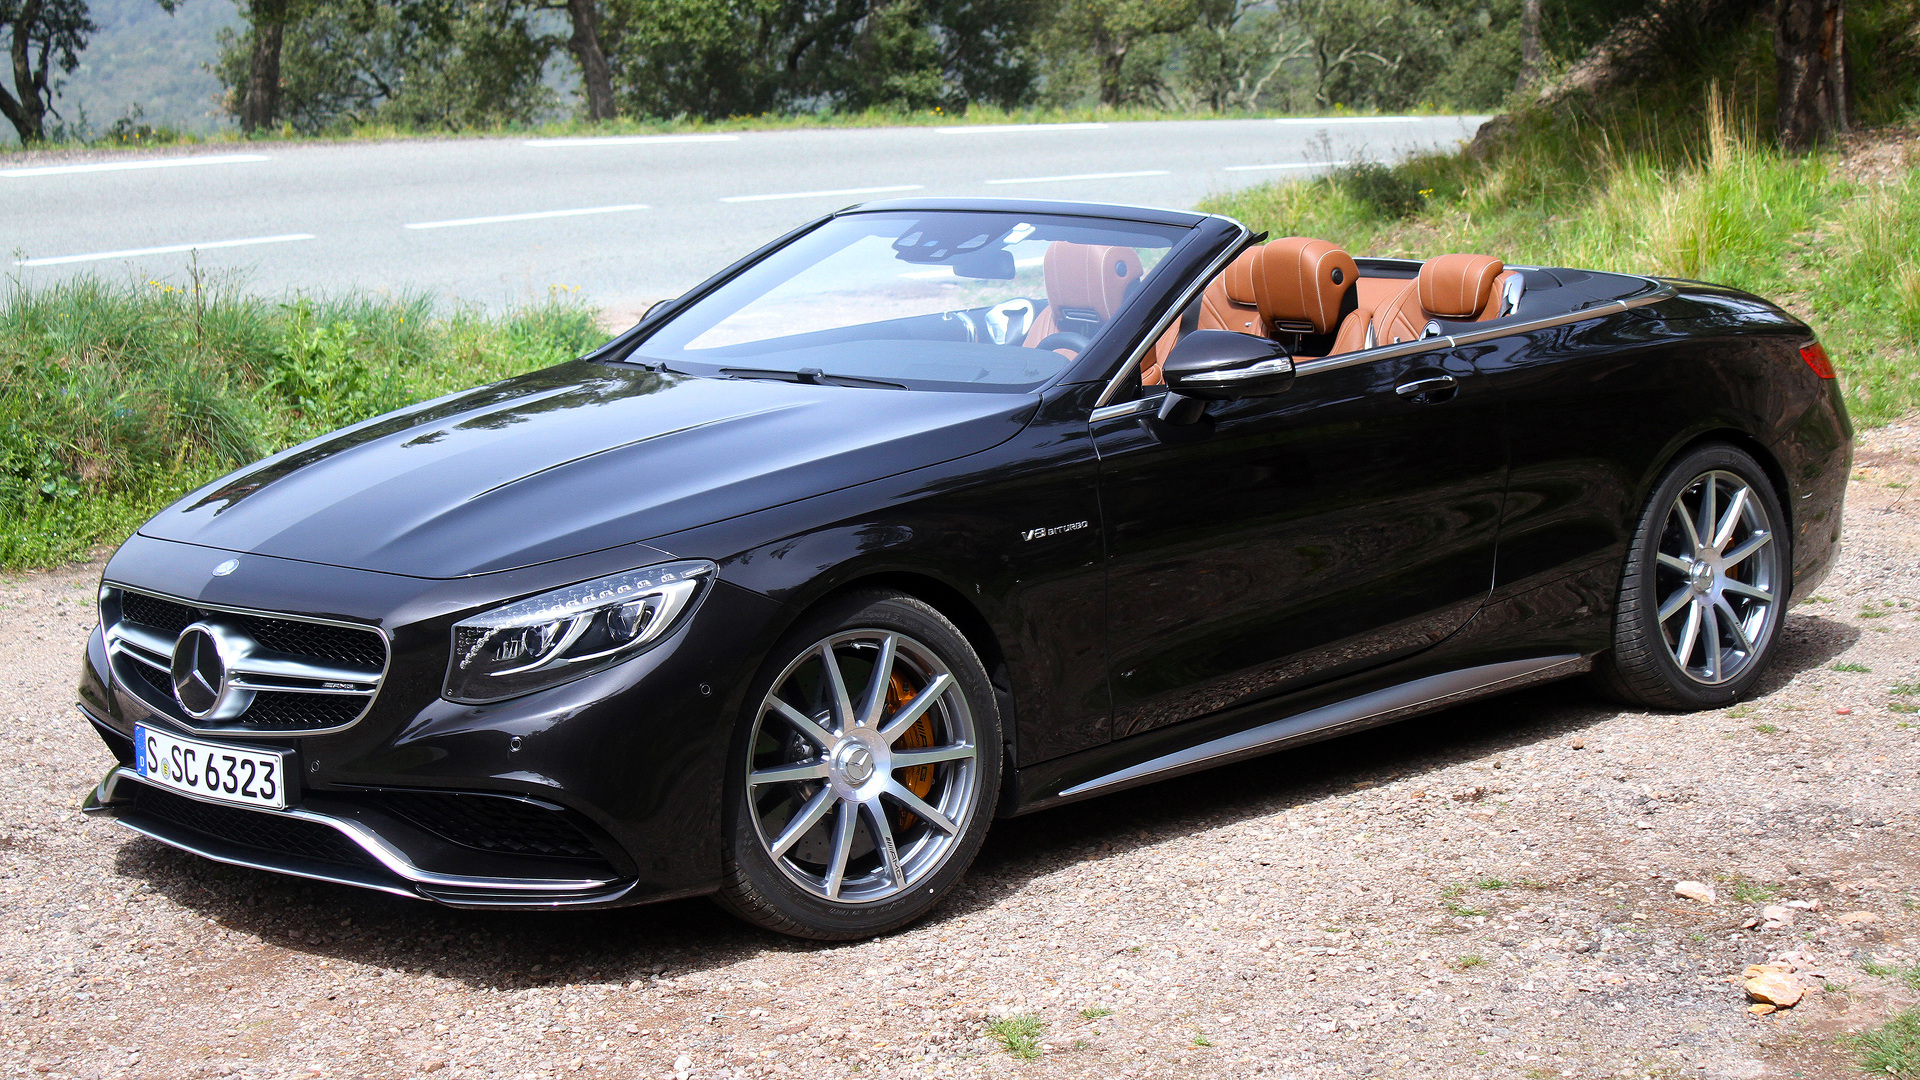 https://icdn-3.motor1.com/images/mgl/gPNpm/s1/2017-mercedes-amg-s63-cabriolet.jpg